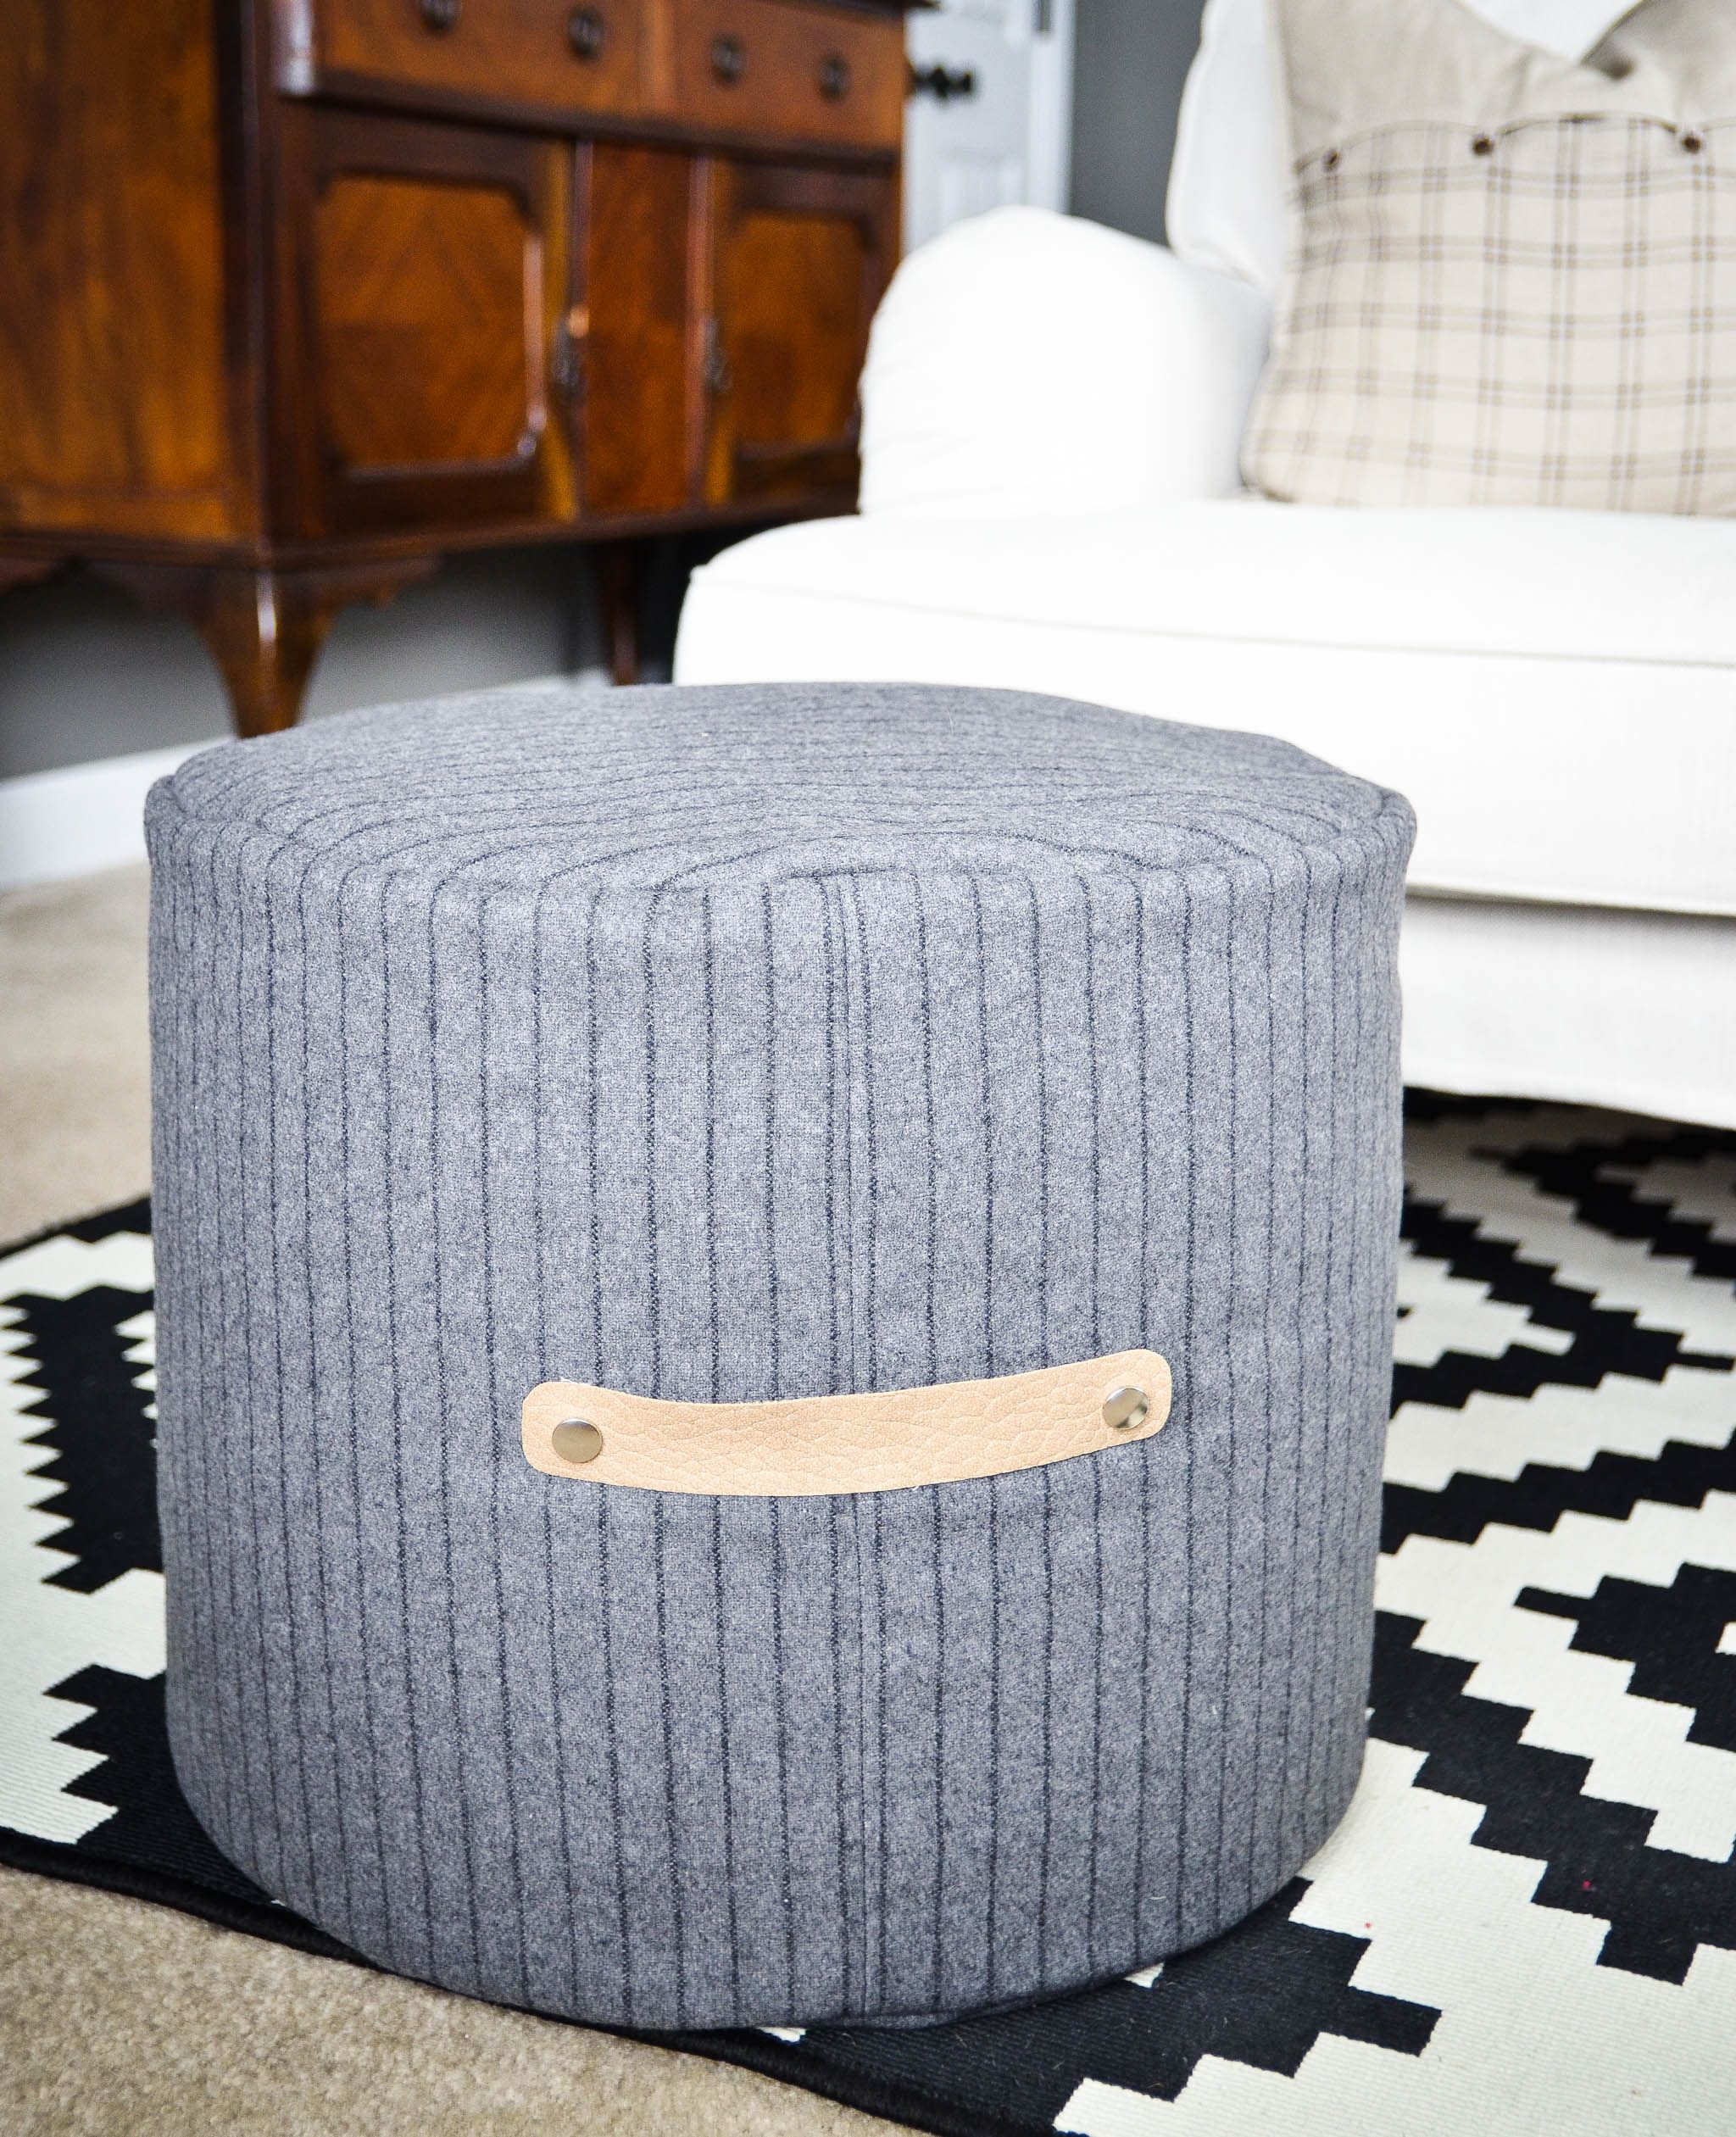 Diy Floor Pouf Tutorial With Images